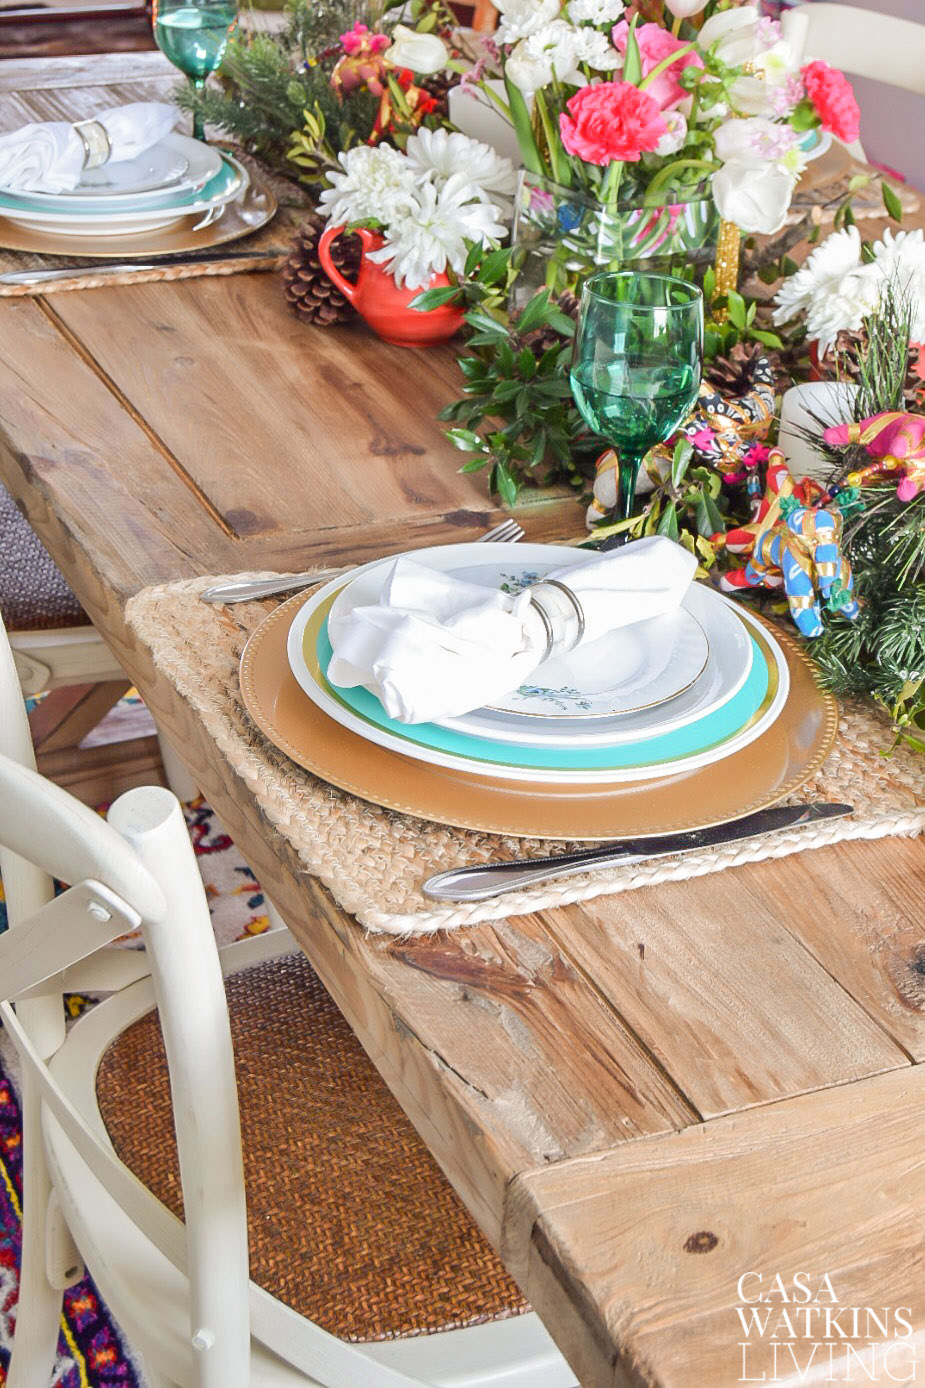 Colorful holiday table decor with global vibes on farmhouse table